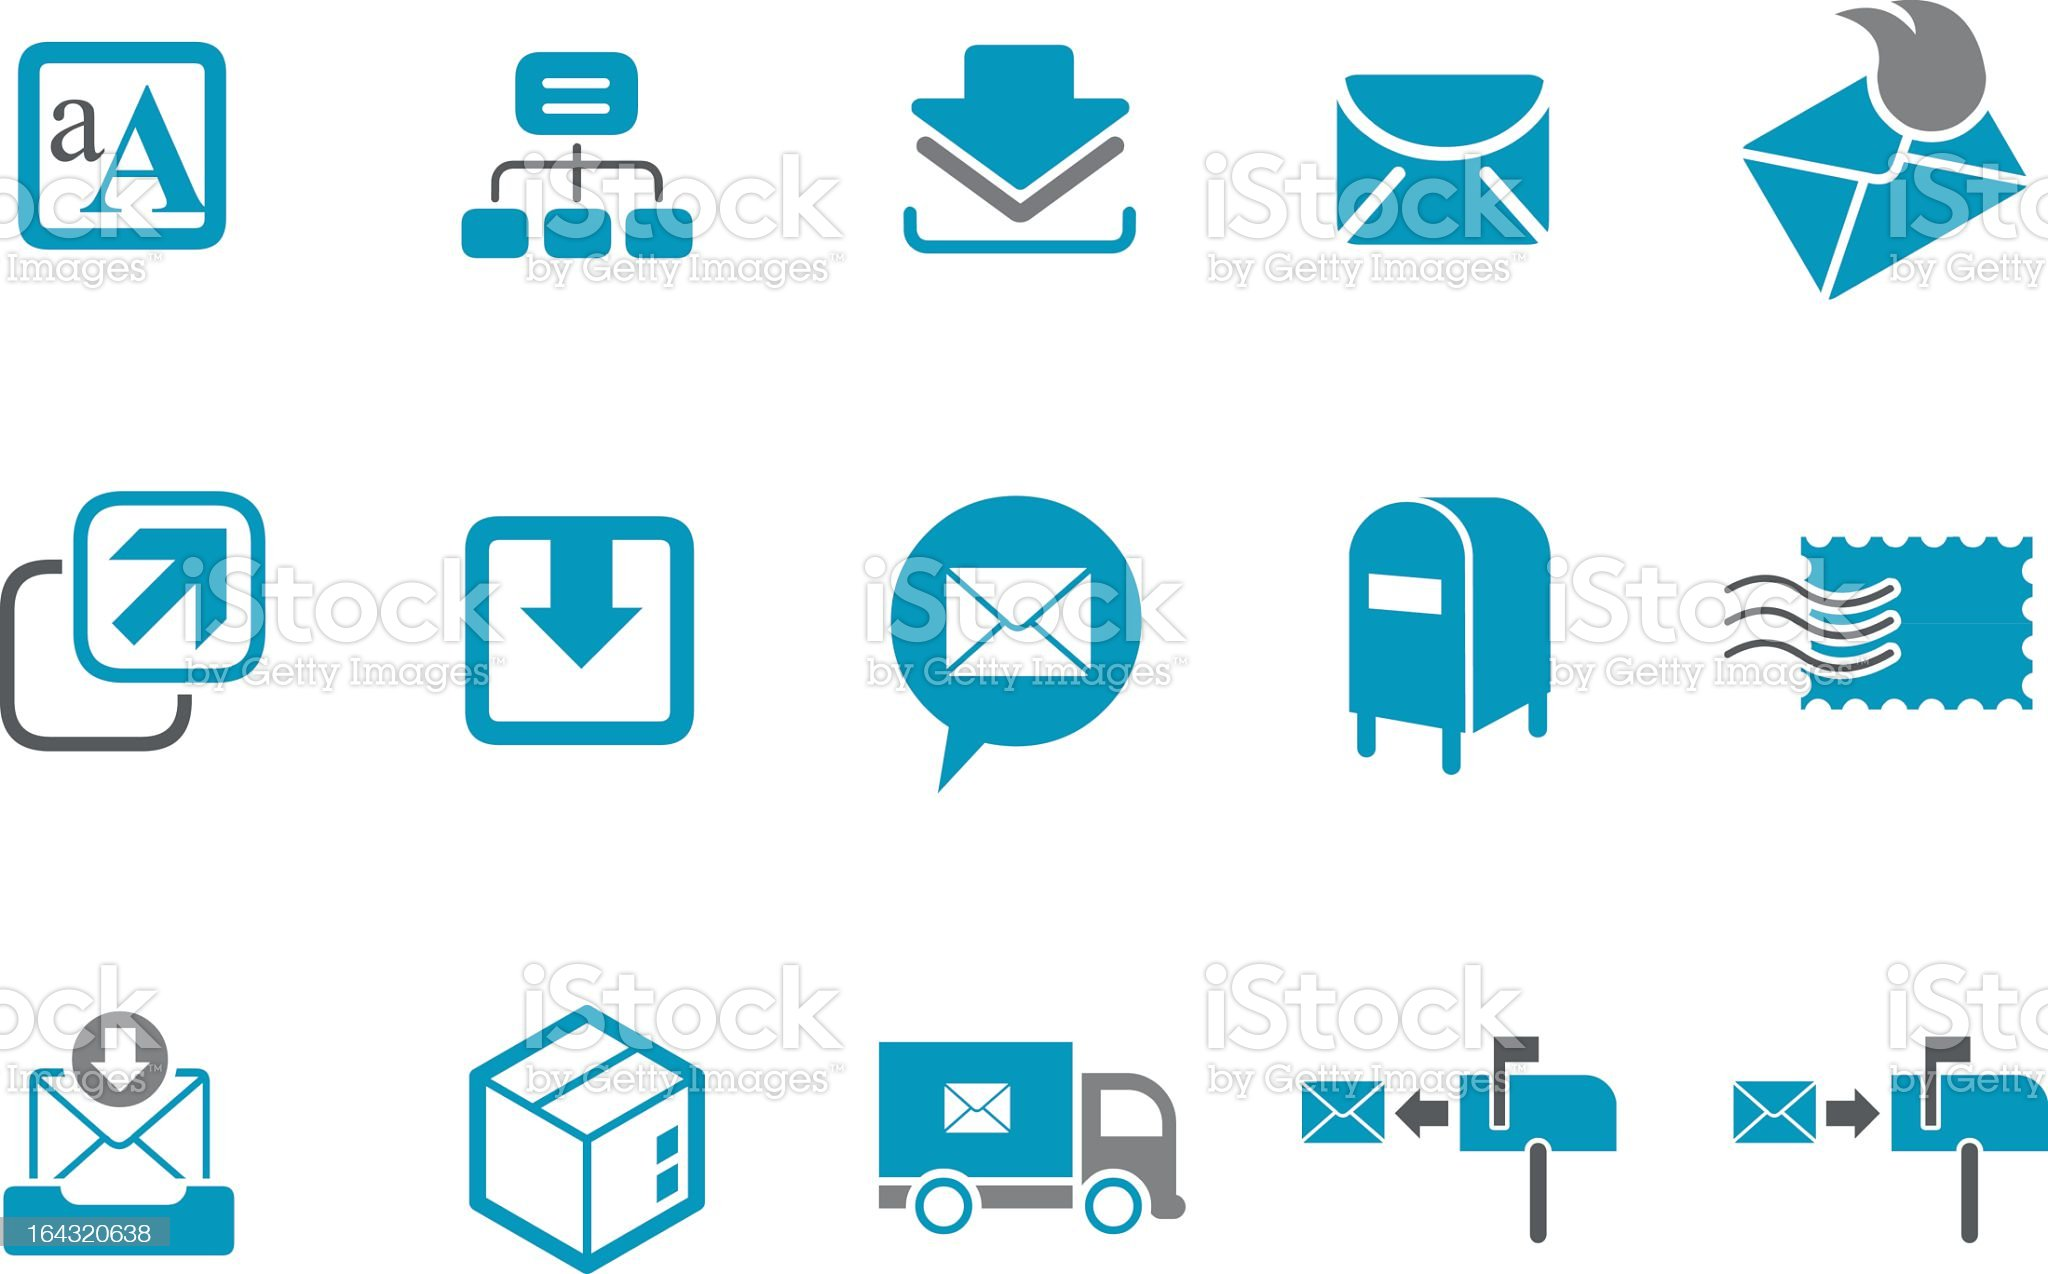 A set of vector mailing icons in blue and white royalty-free stock vector art